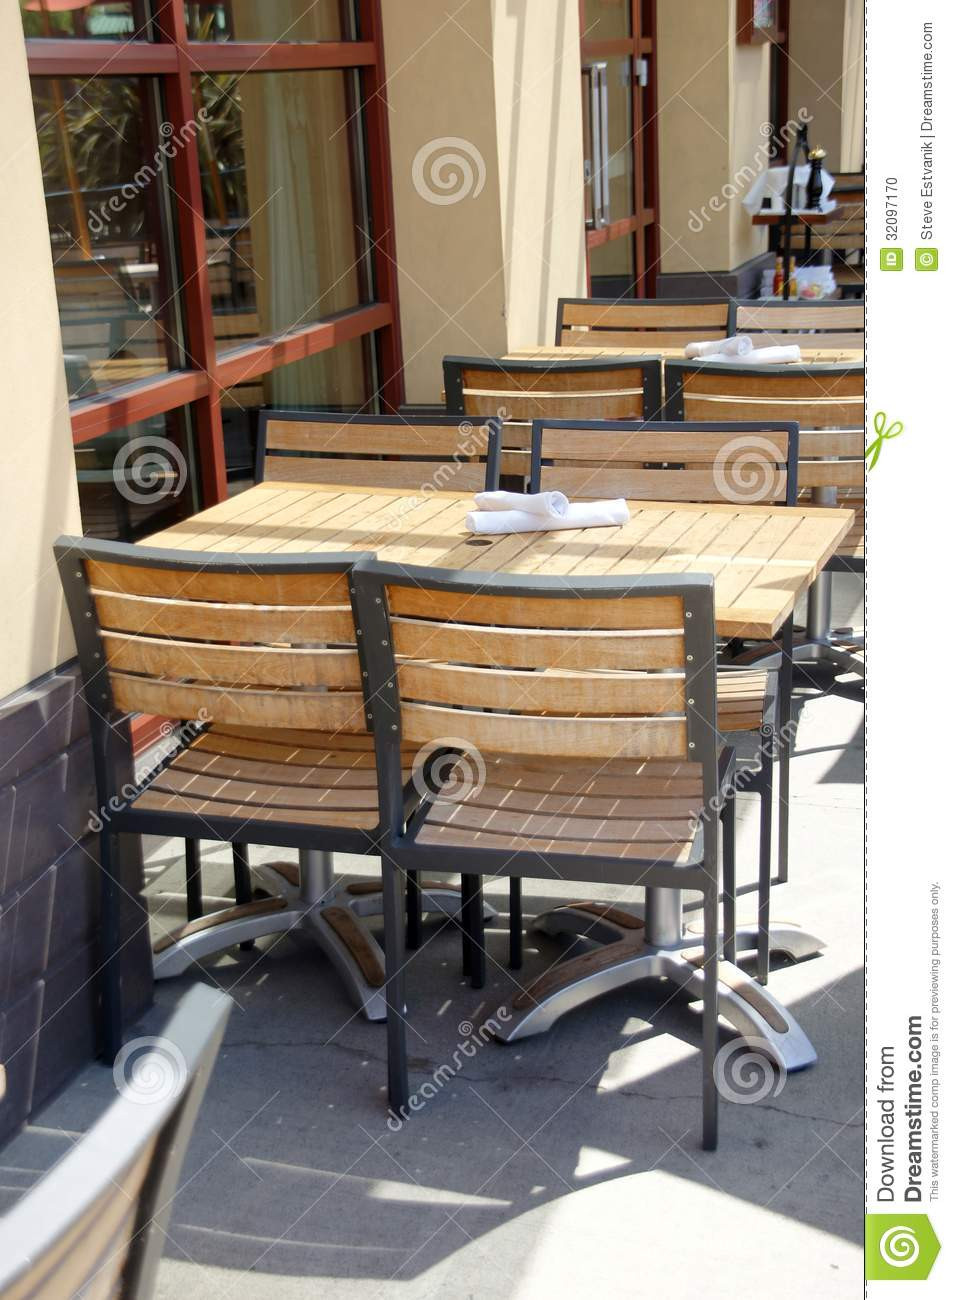 Best ideas about Restaurant Patio Furniture . Save or Pin Outdoor Dining Patio Furniture Sets Modern Ideas Now.